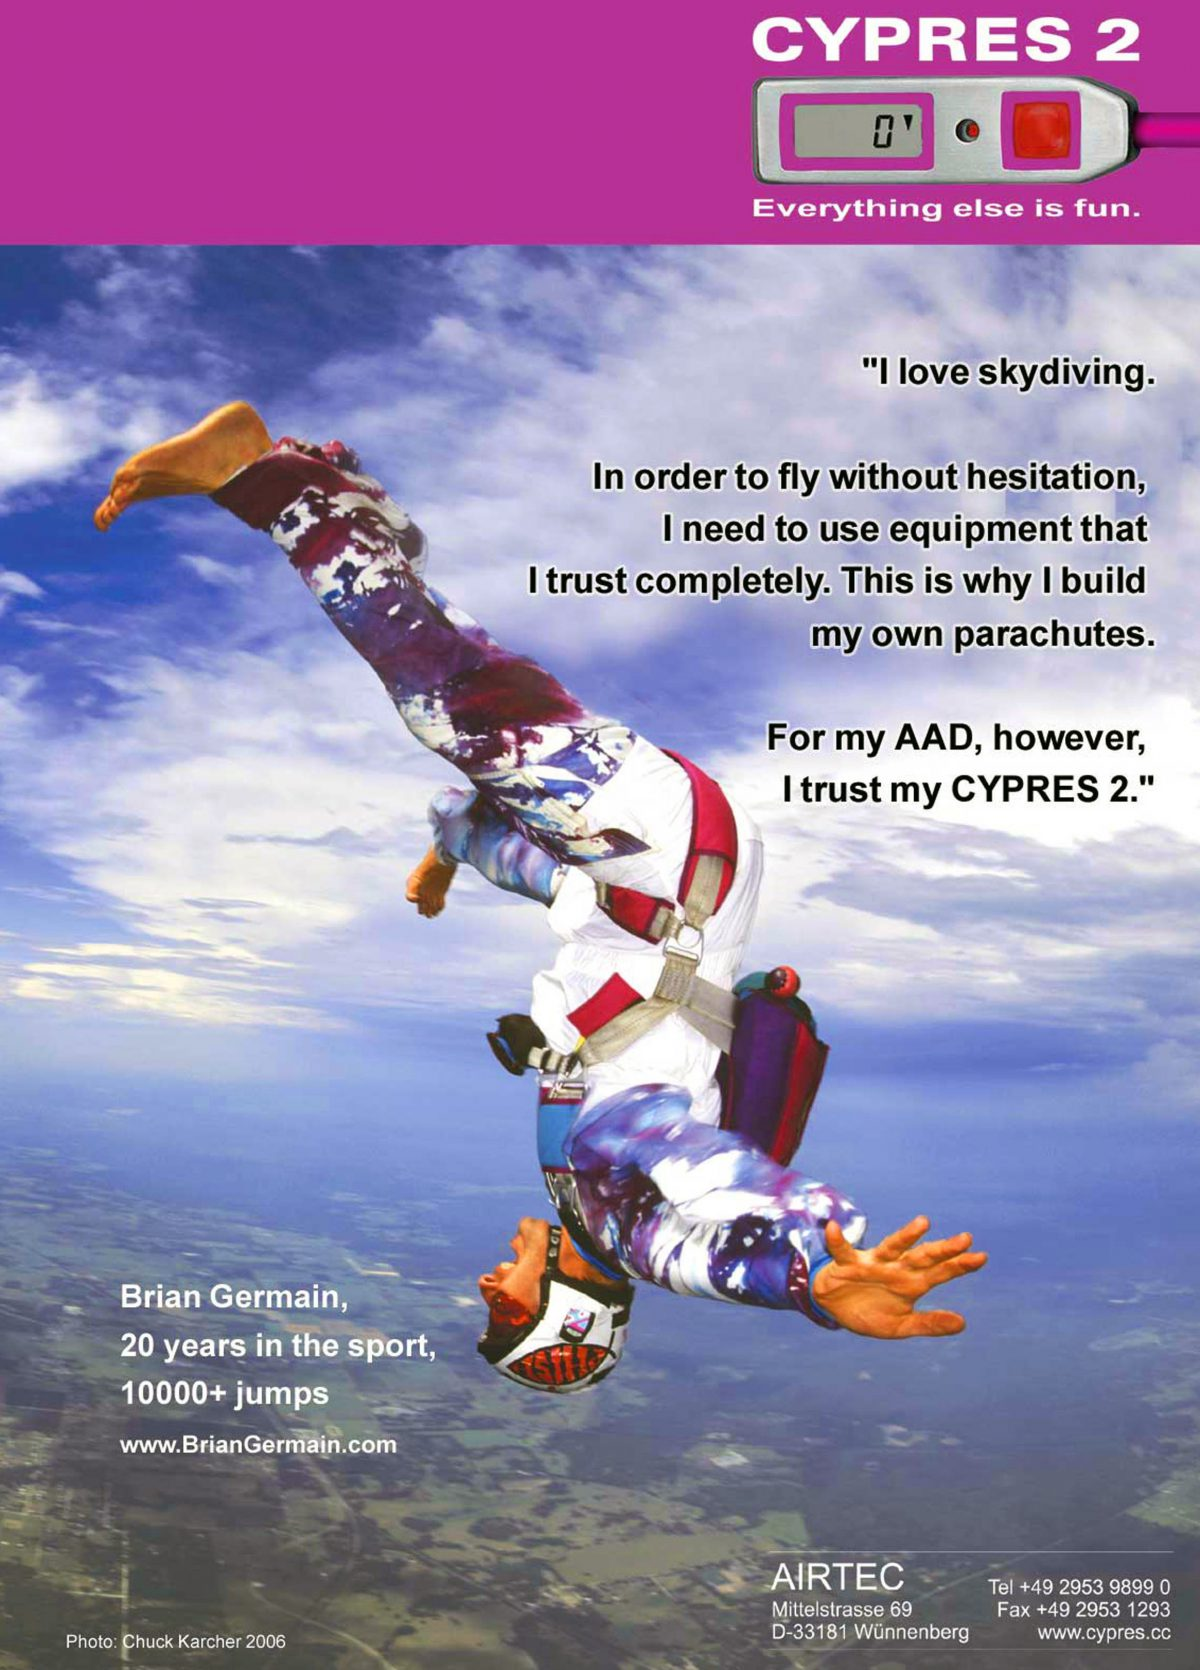 A CYPRES ad from 2006